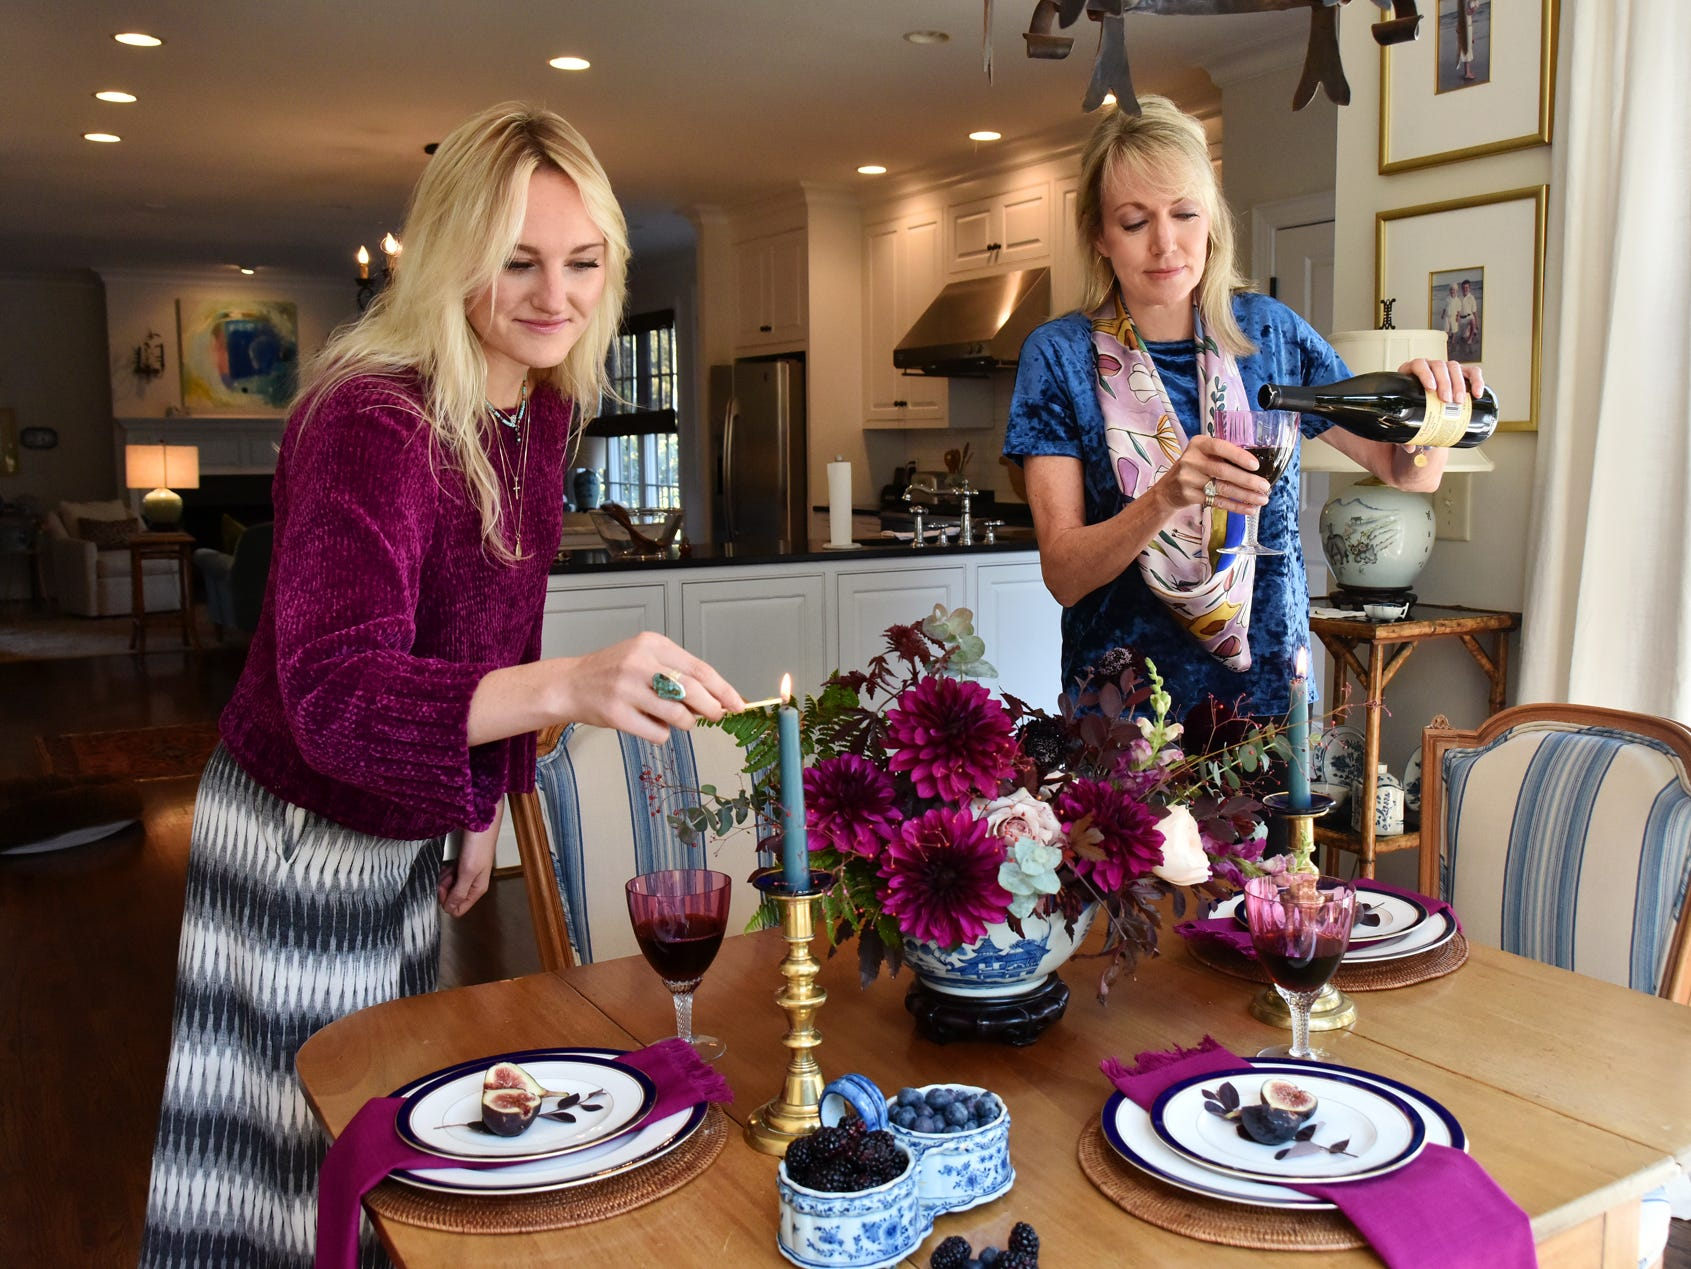 Kelsey Olsen, left, and her Jeanne, set up a tablescape.